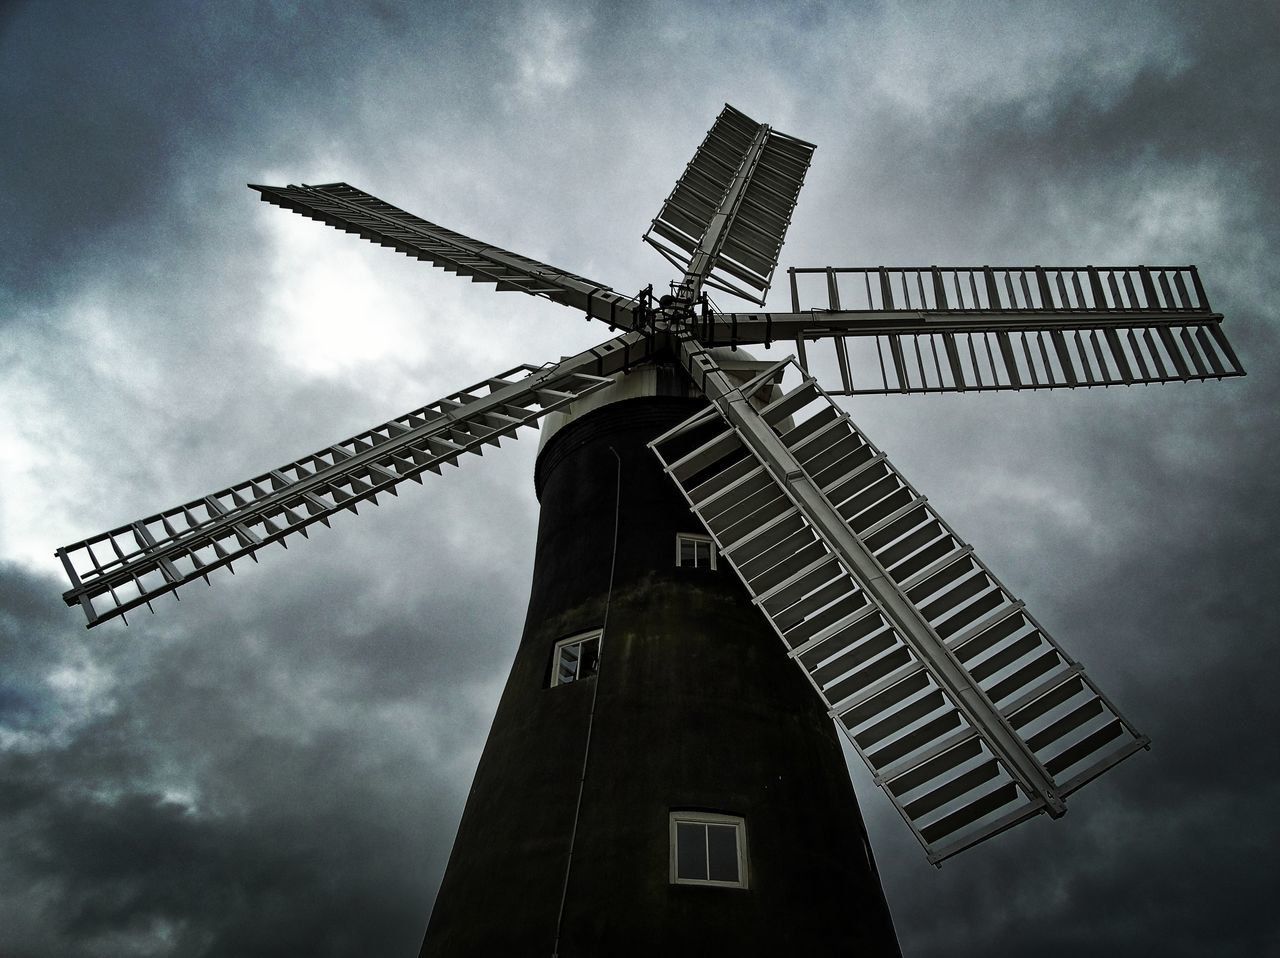 First Eyeem Photo Windmill Clouds Storm Mill Building